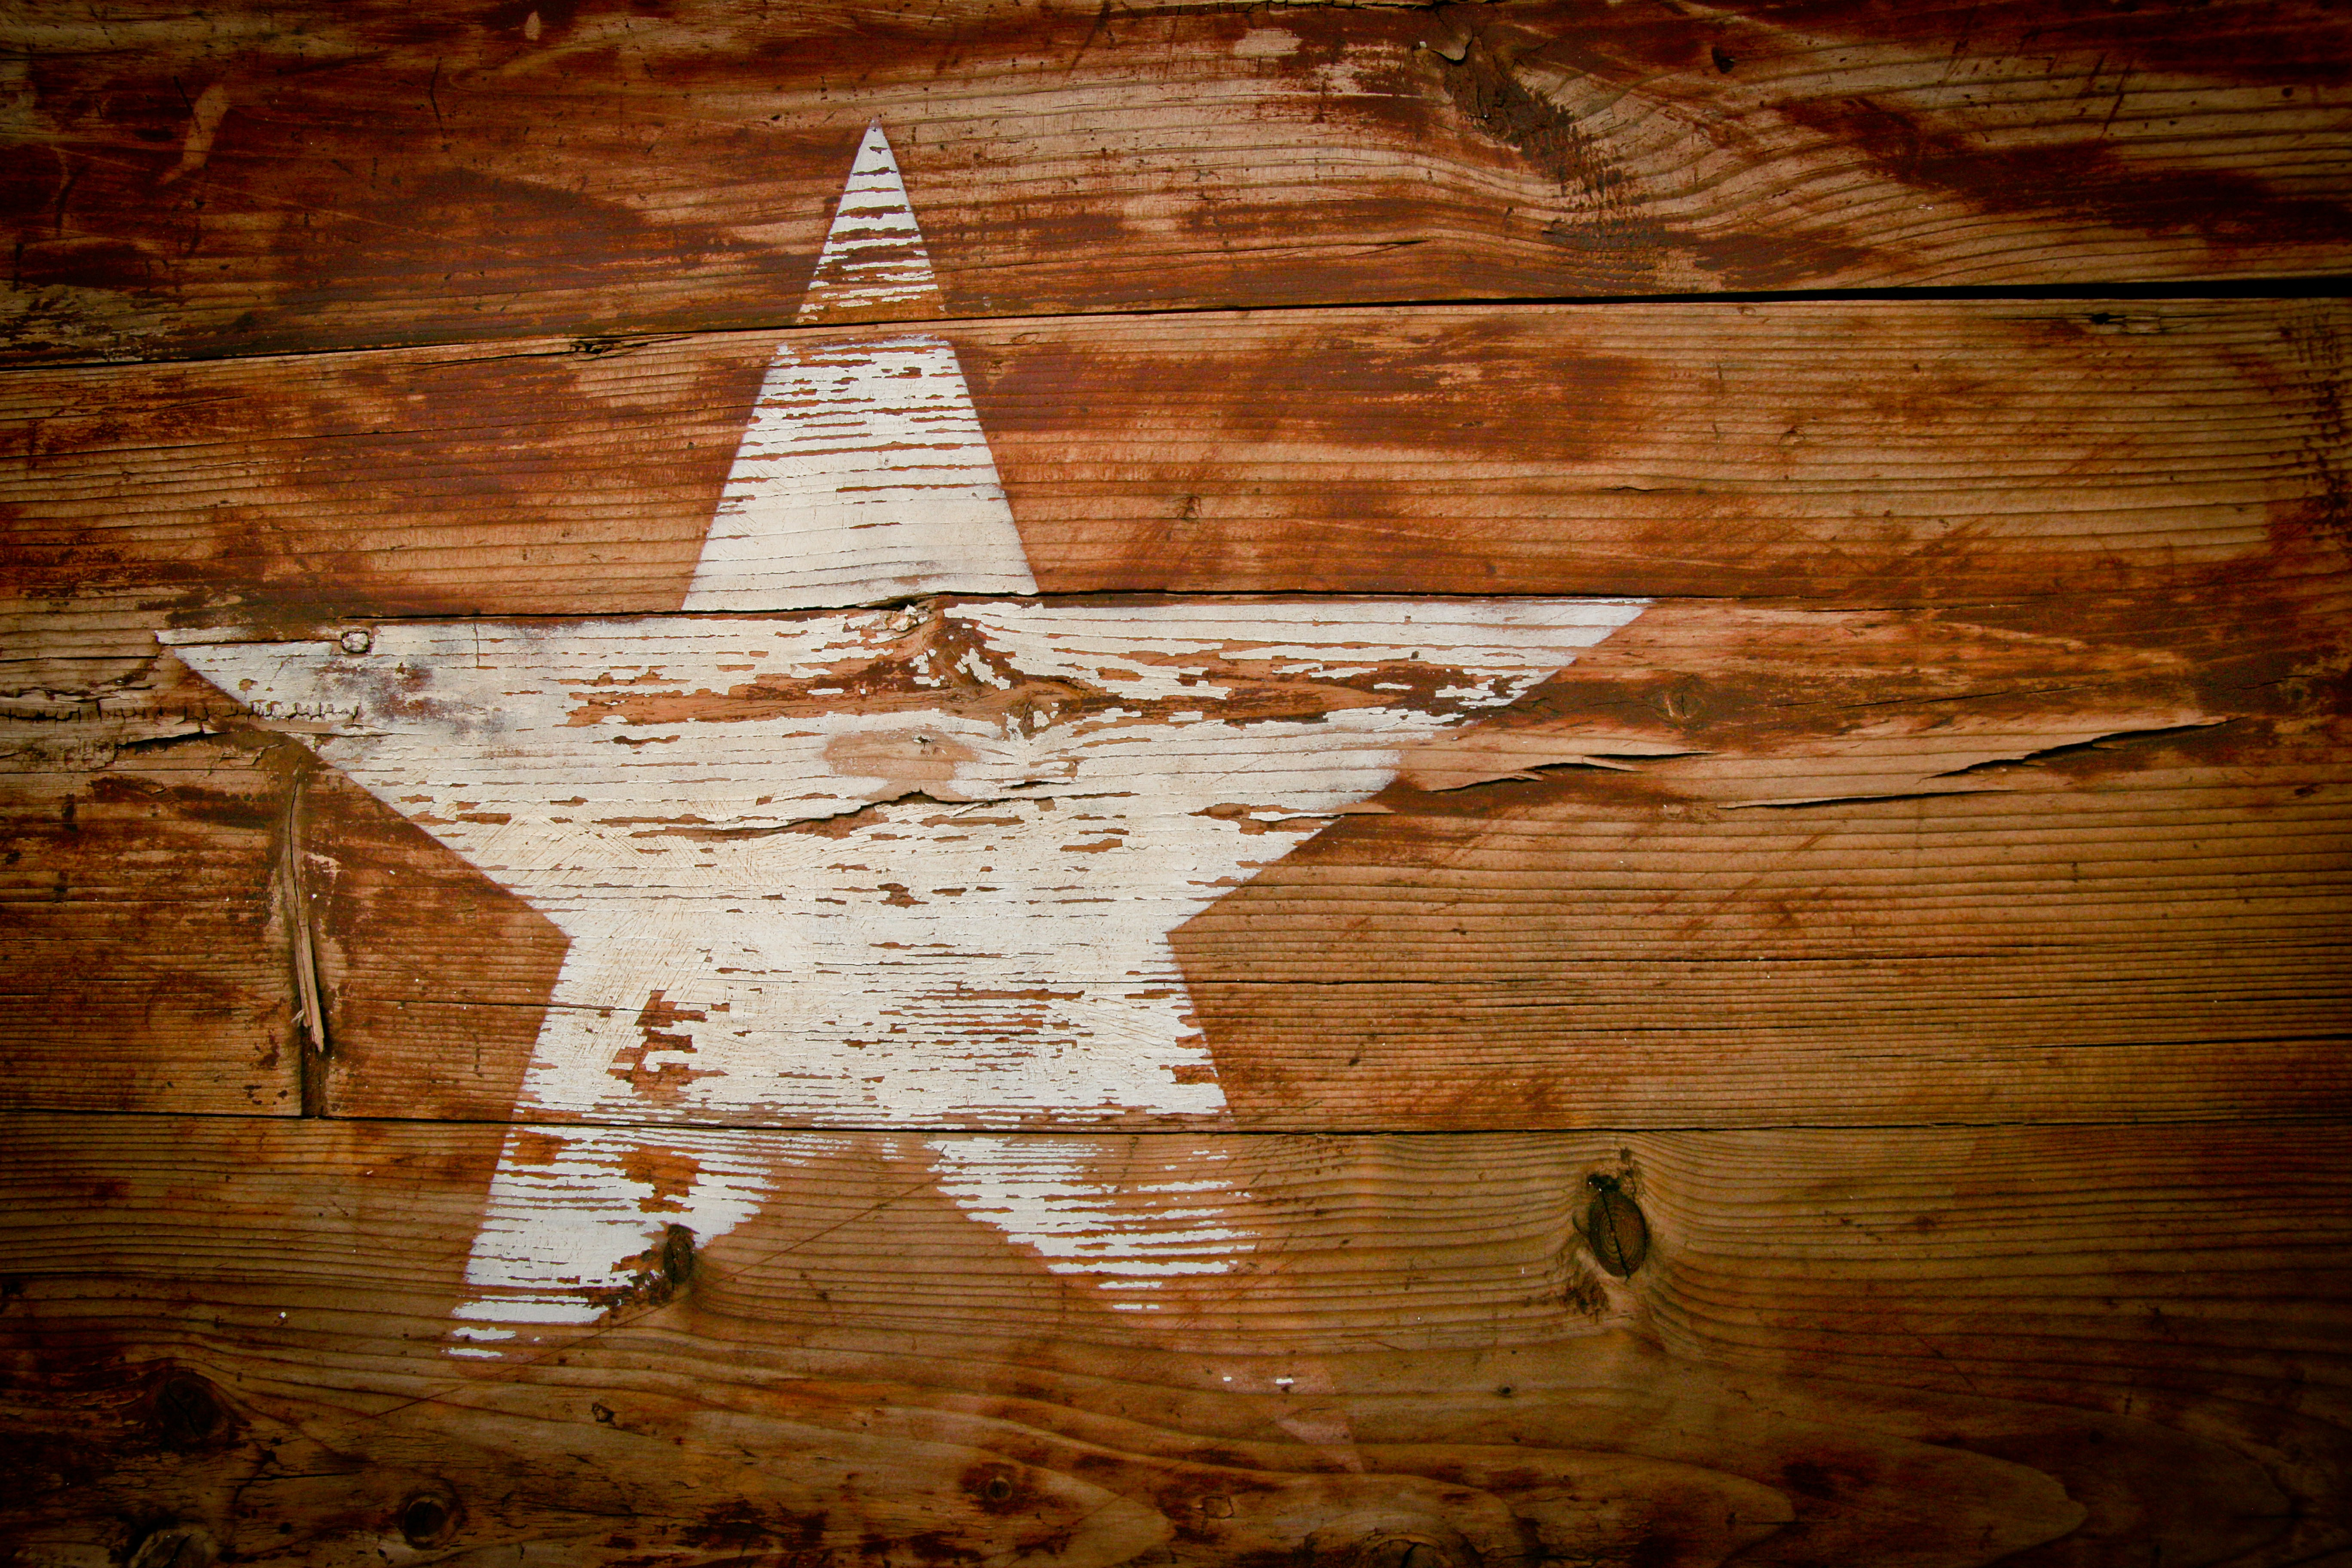 A wooden panel with a white star on it in South Africa